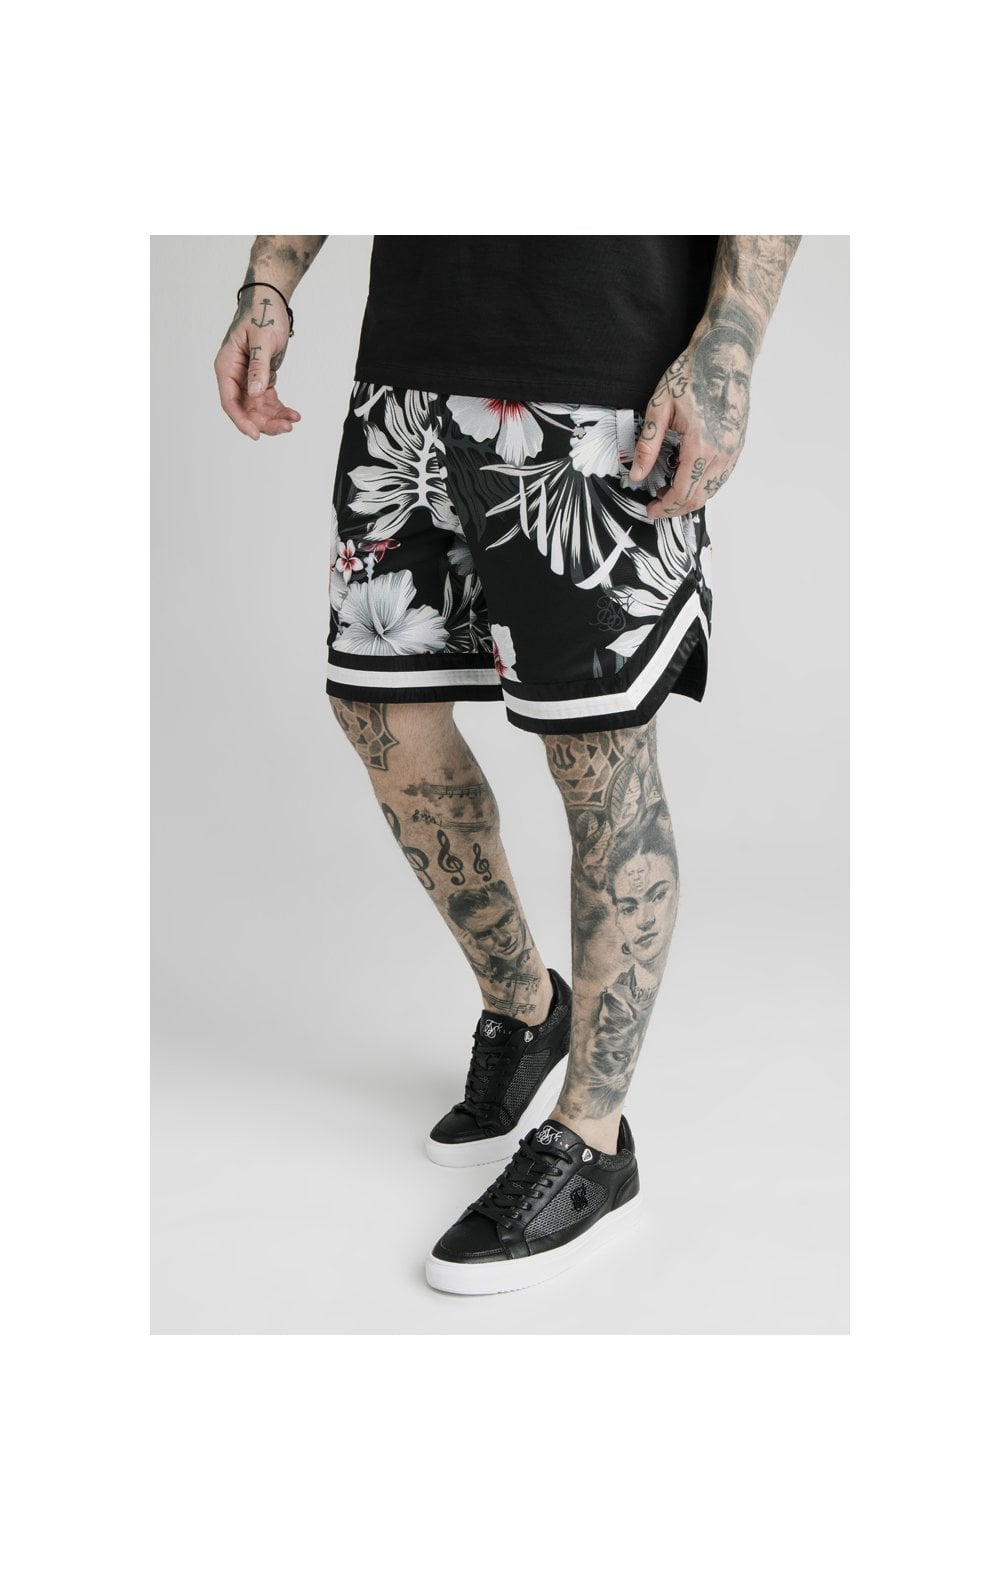 Load image into Gallery viewer, SikSilk Floral Basketball Shorts - Black